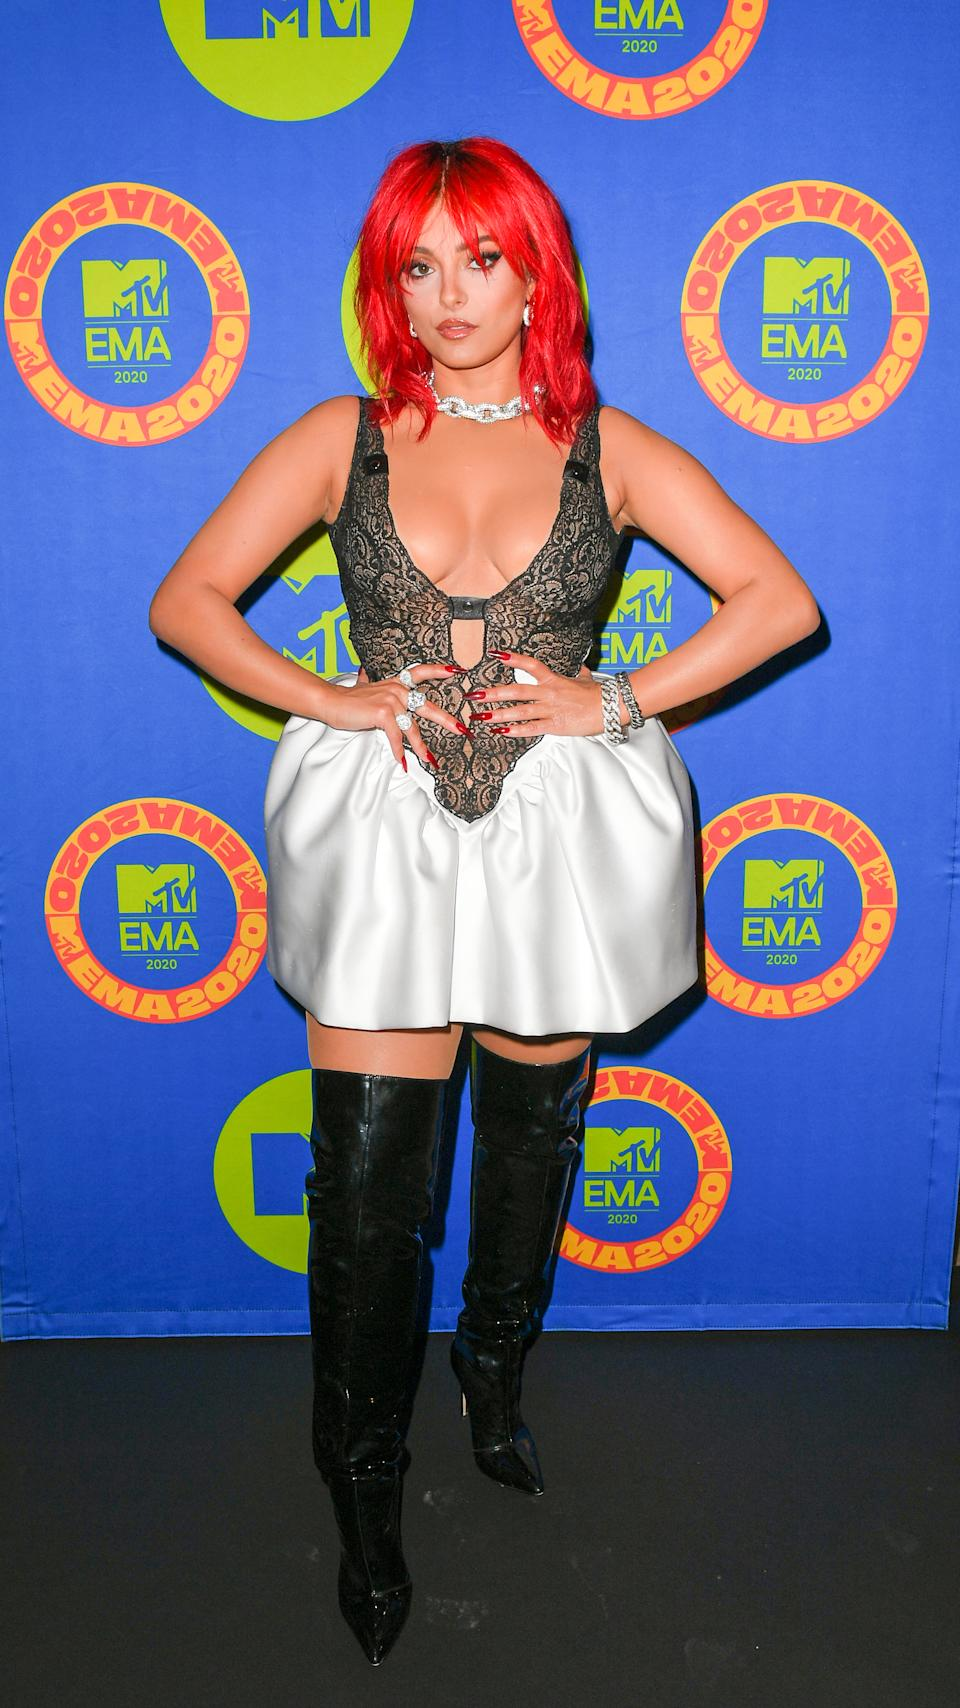 In this image released on November 08, Bebe Rexha poses ahead of the MTV EMA's 2020 on November 02, 2020 in Los Angeles, California. The MTV EMA's aired on November 08, 2020.